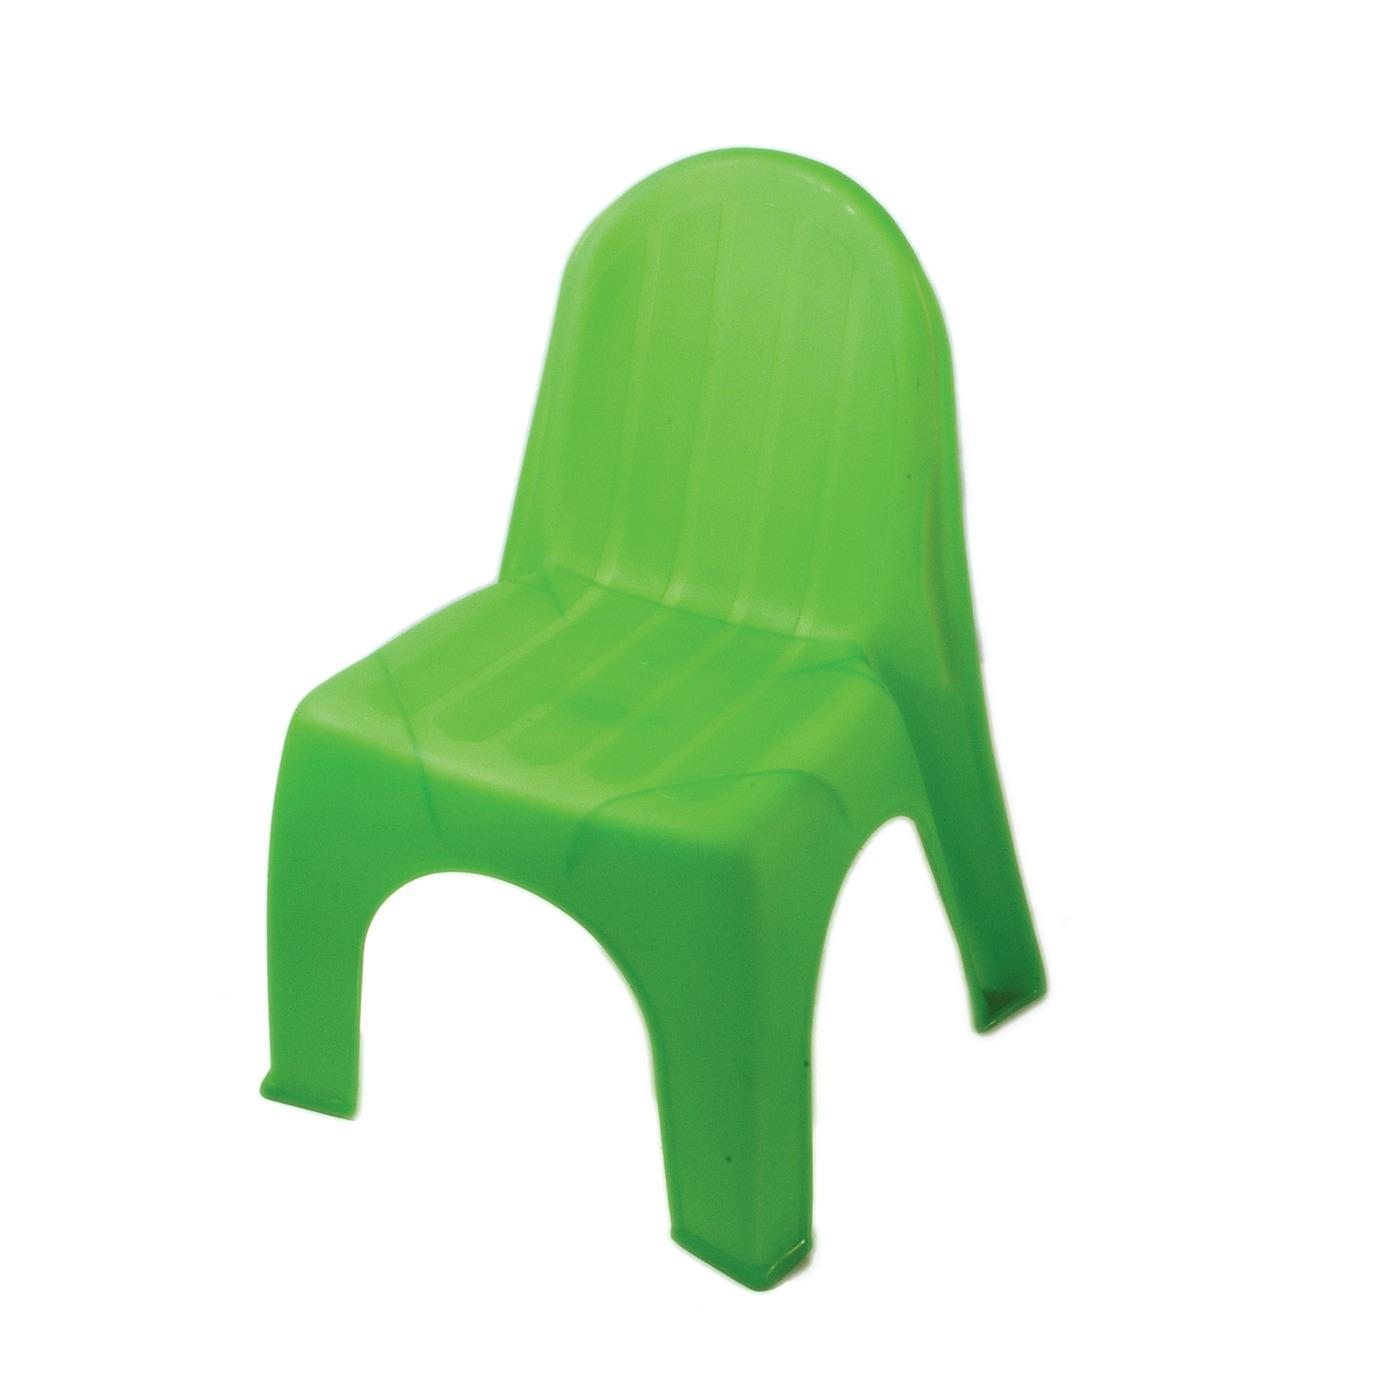 Plastic Children's Chair - Lime